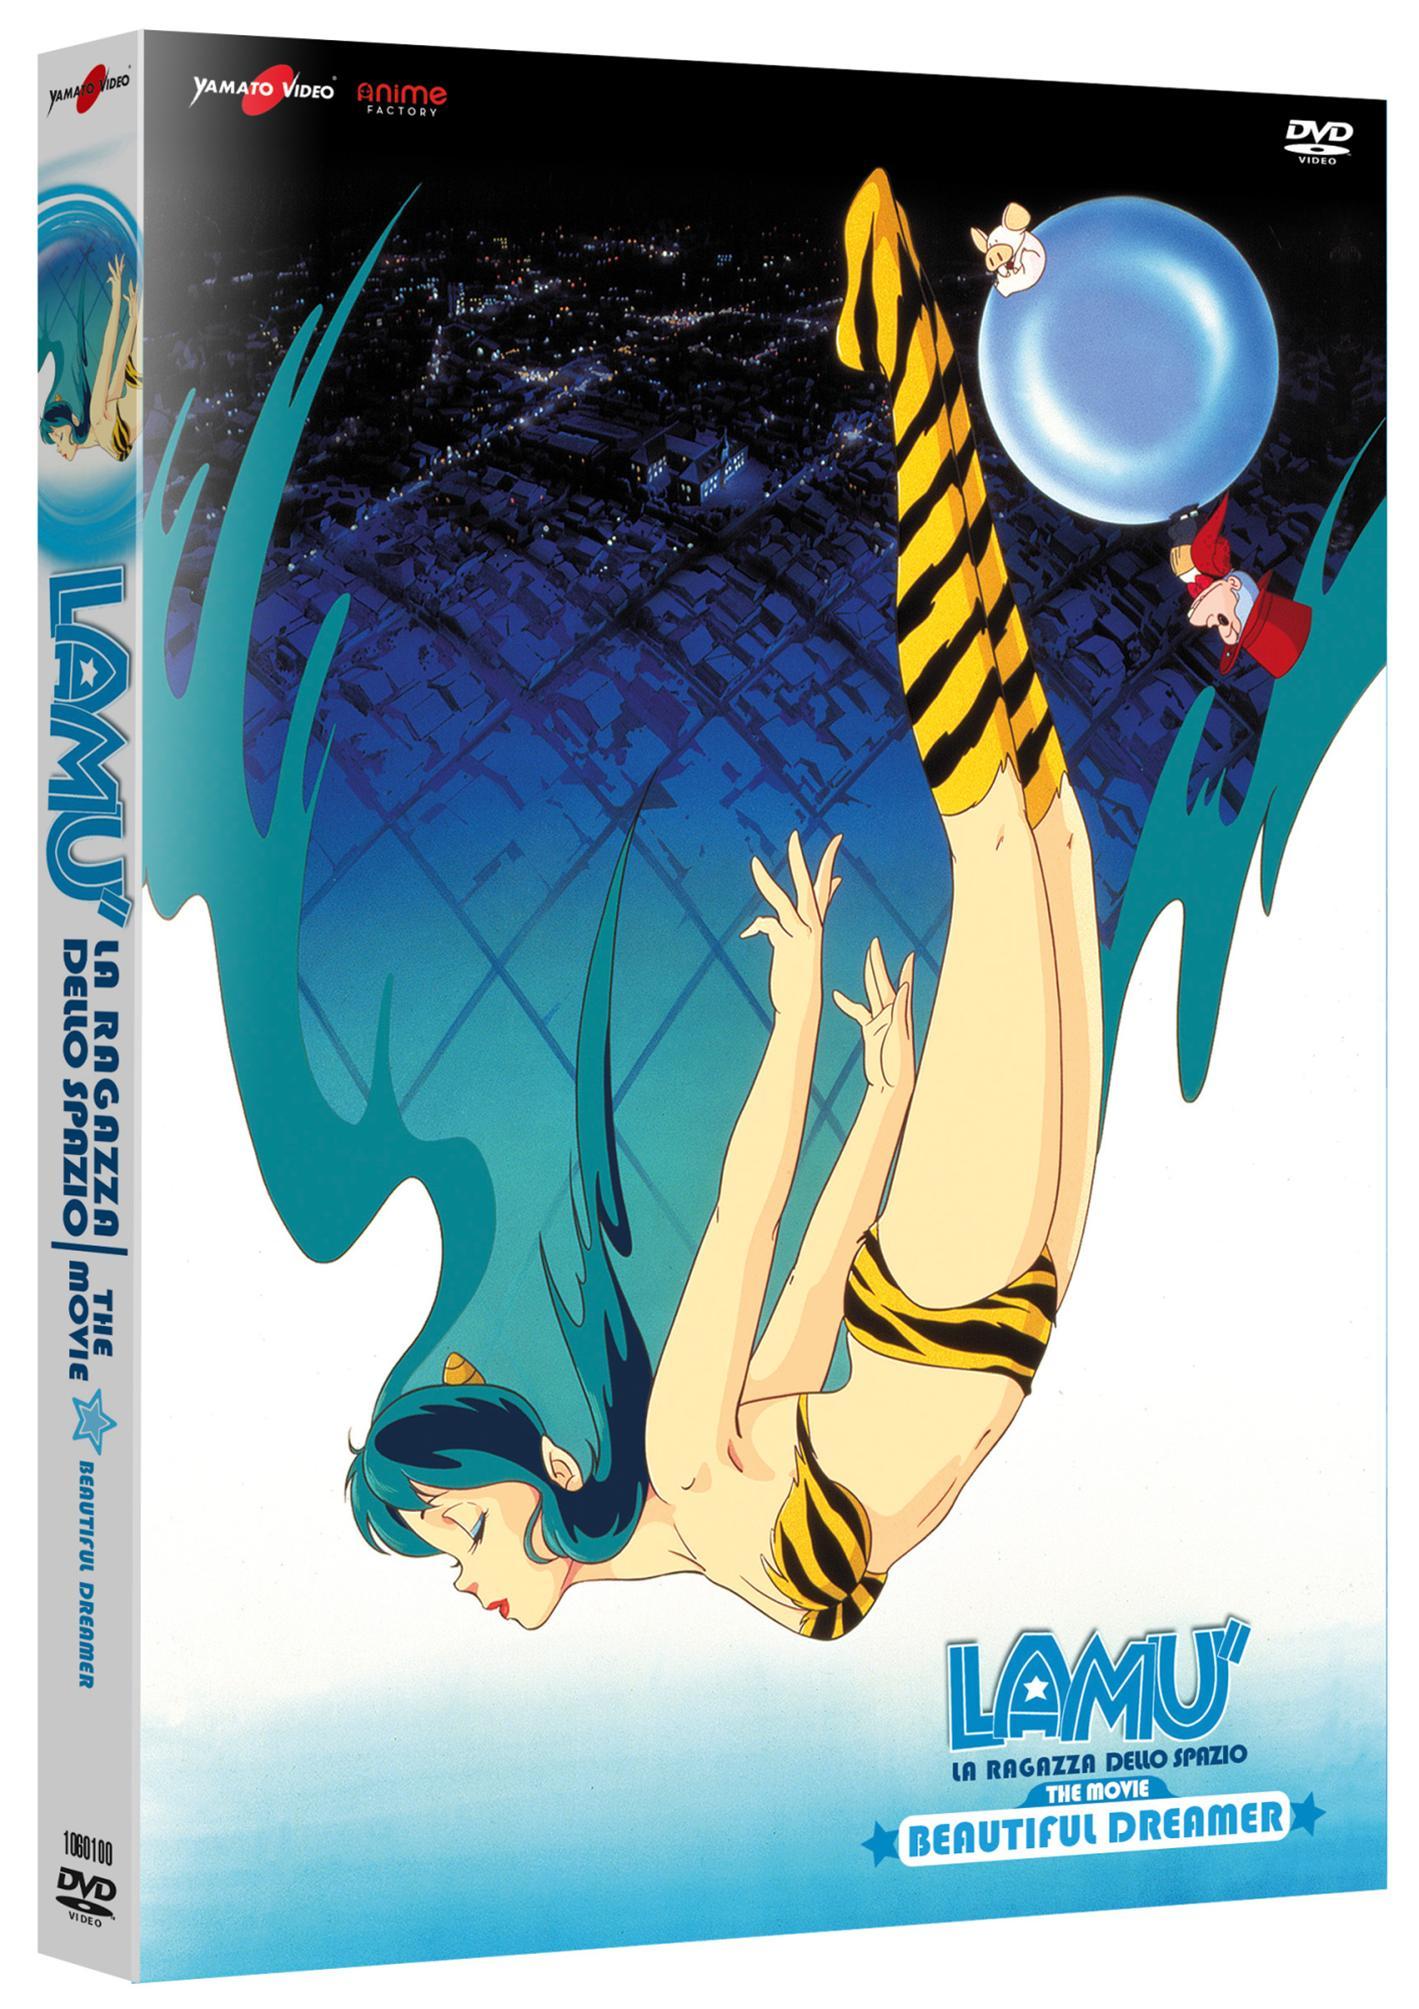 LAMU' BEAUTIFUL DREAMER (DVD)